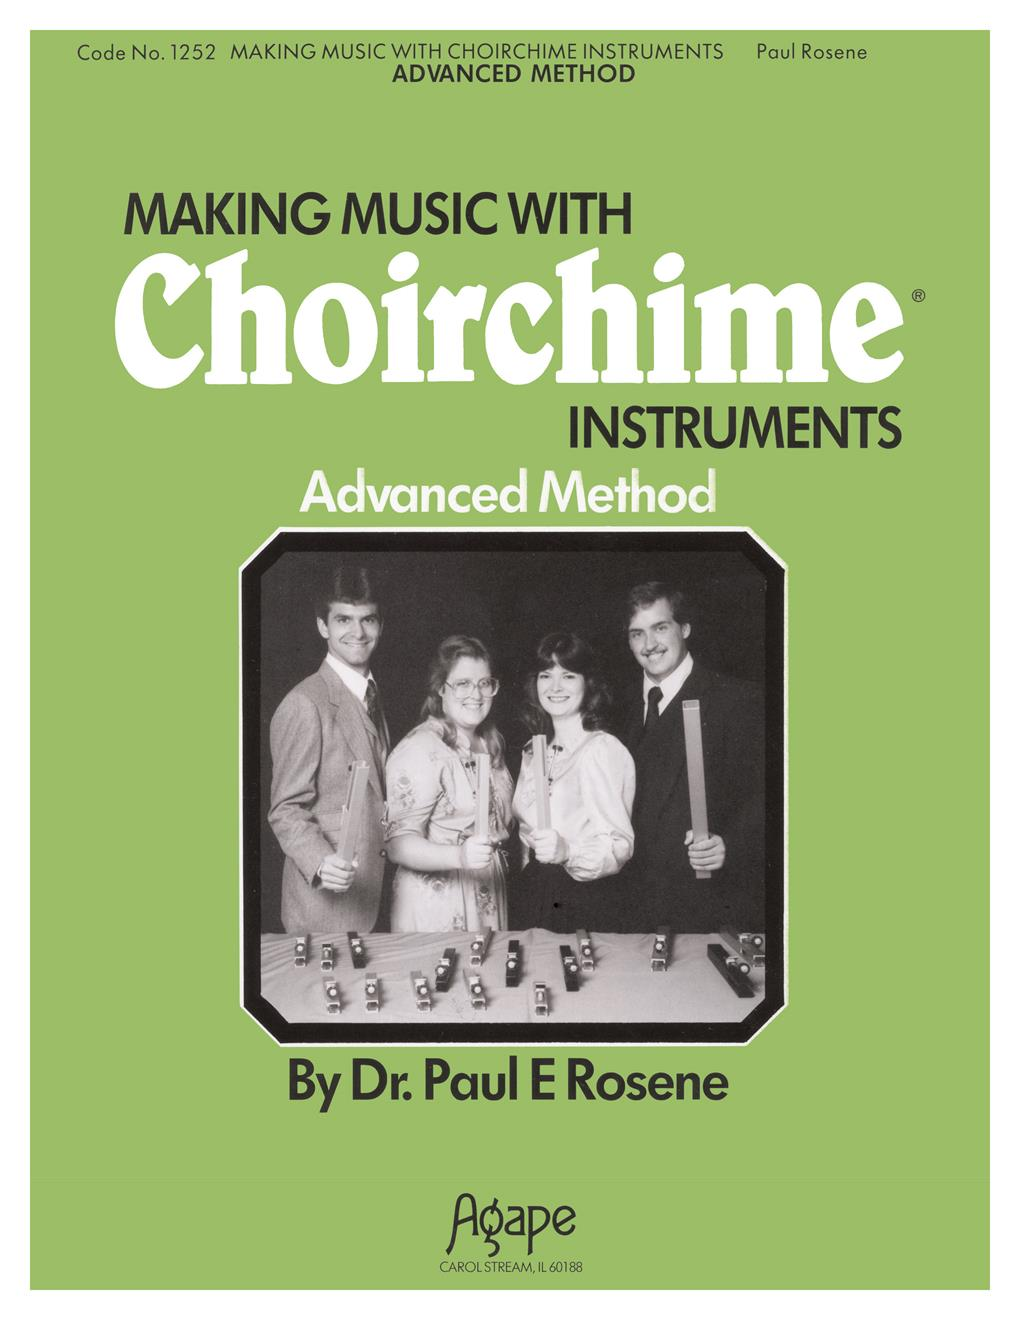 Making Music with Choirchimes - Advanced Method Cover Image